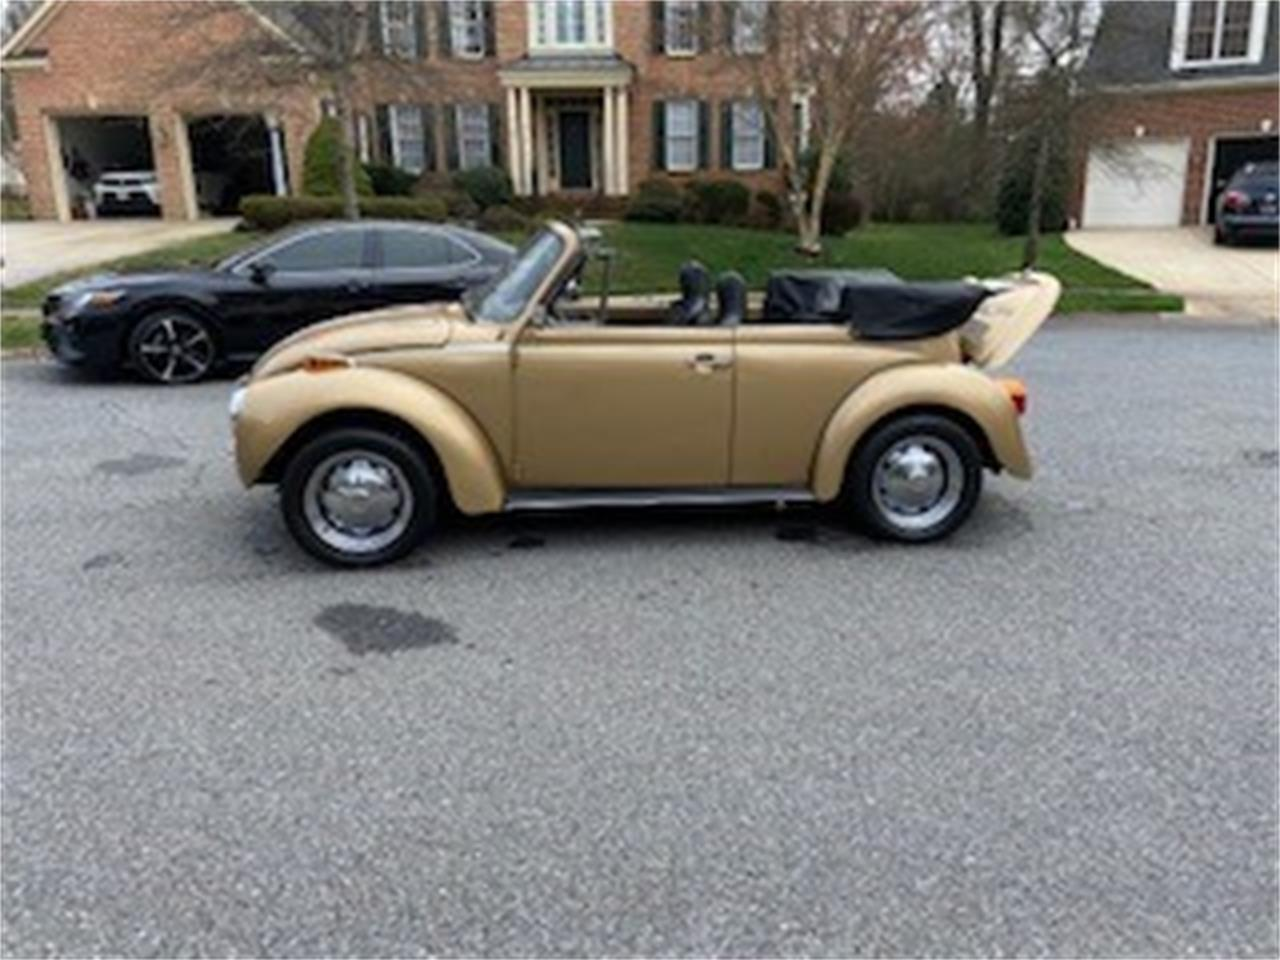 for sale 1974 volkswagen beetle in gambrills, maryland cars - gambrills, md at geebo